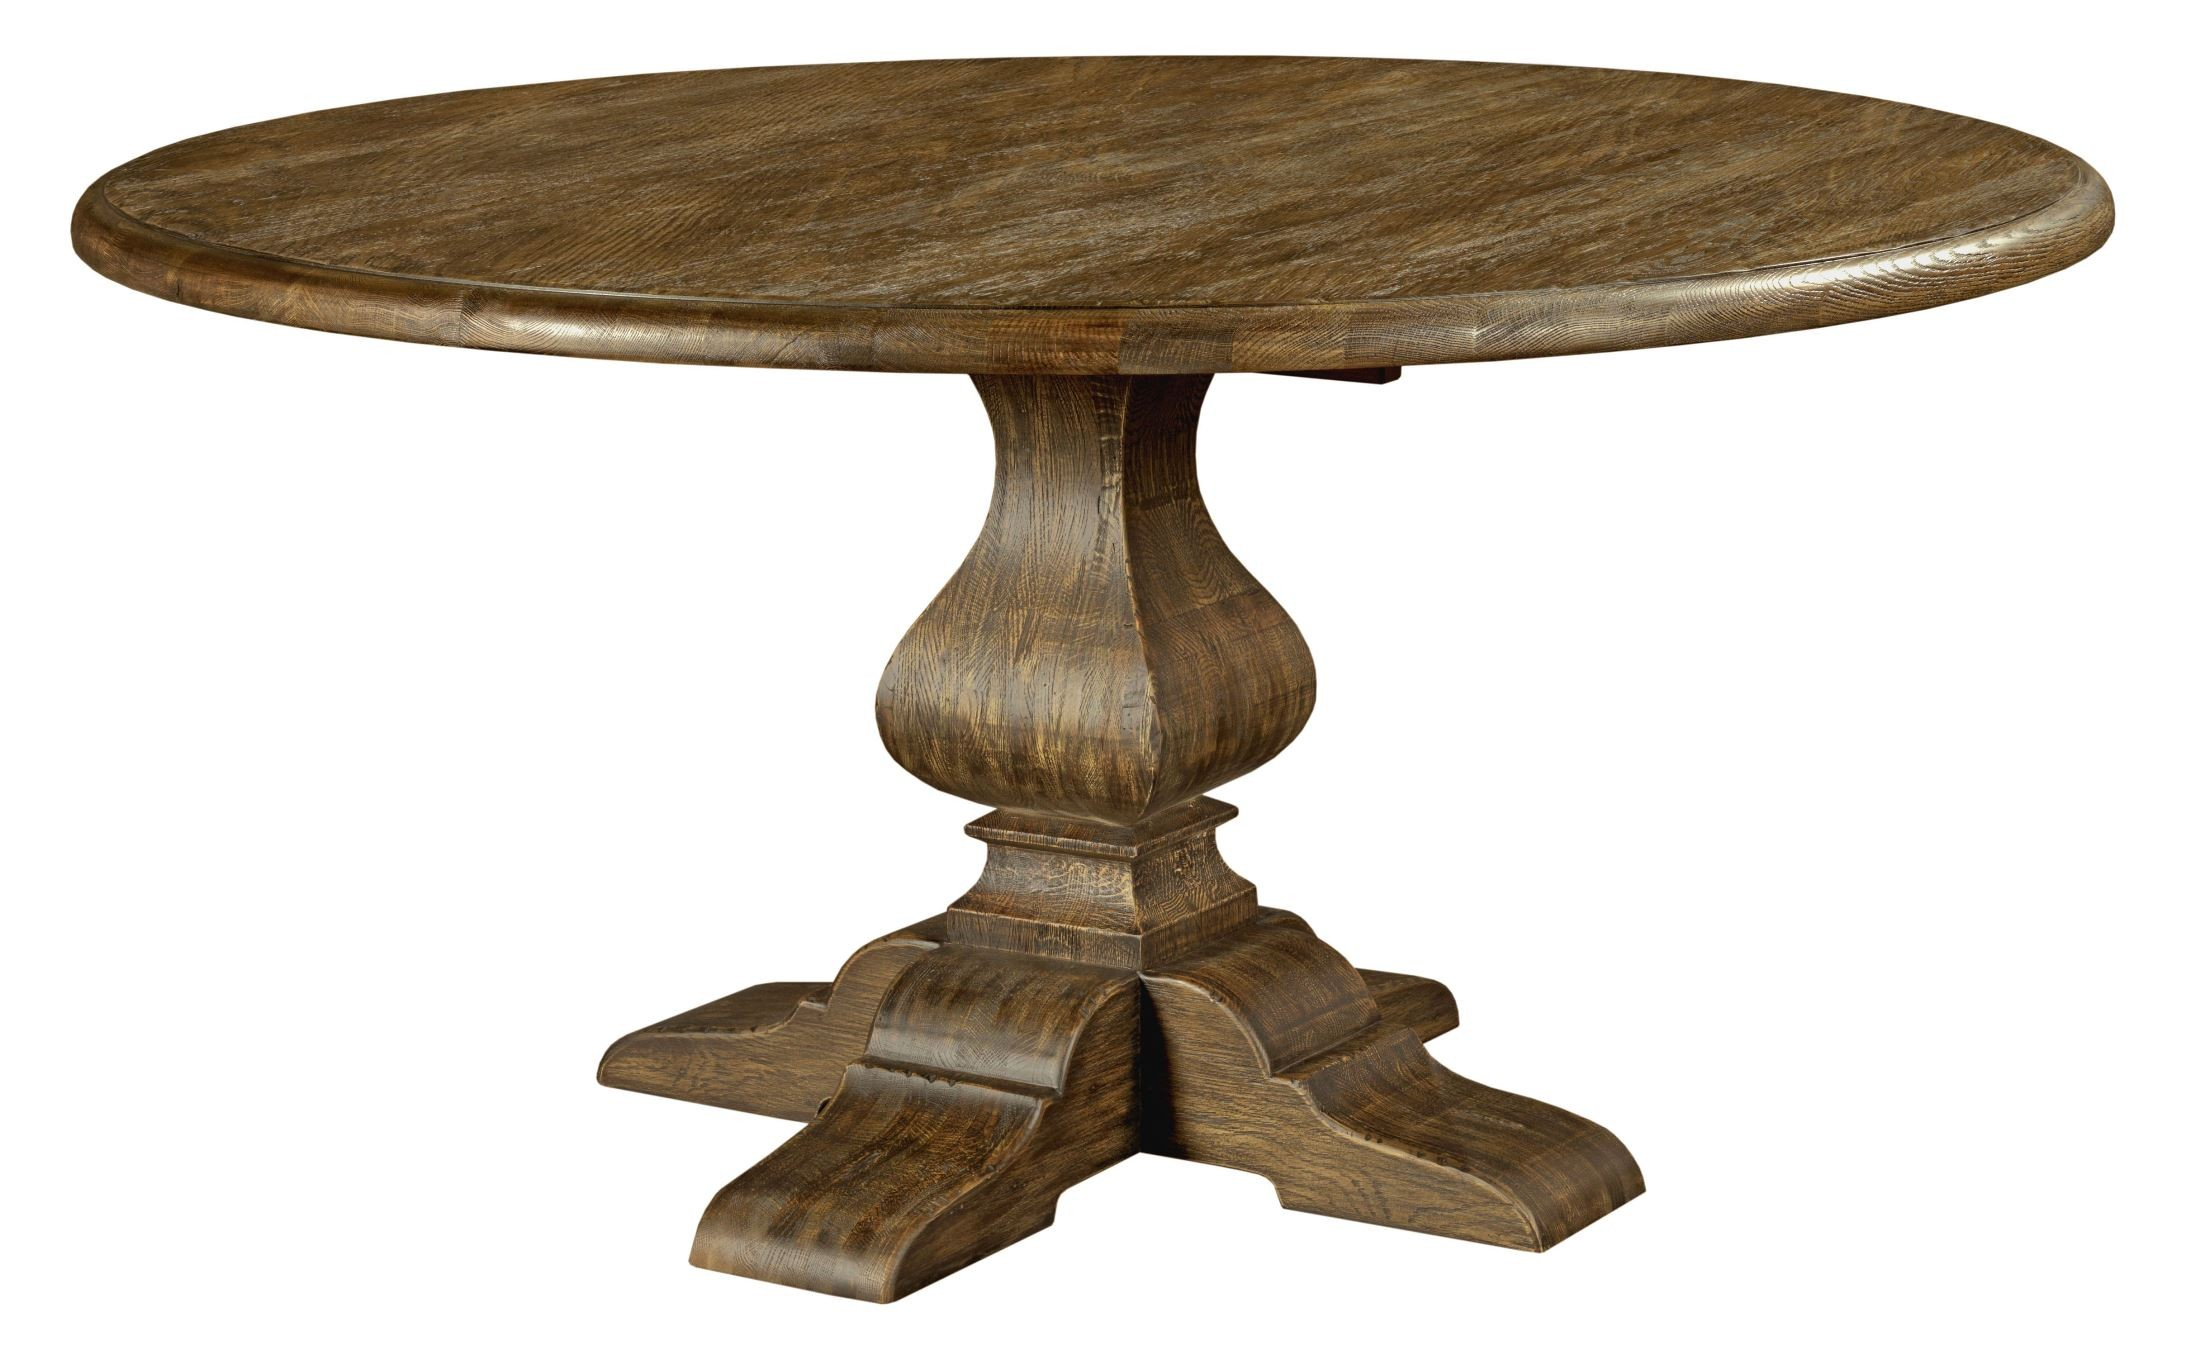 Artisans shoppe 60 tobacco round dining table with wood for 60 round dining table